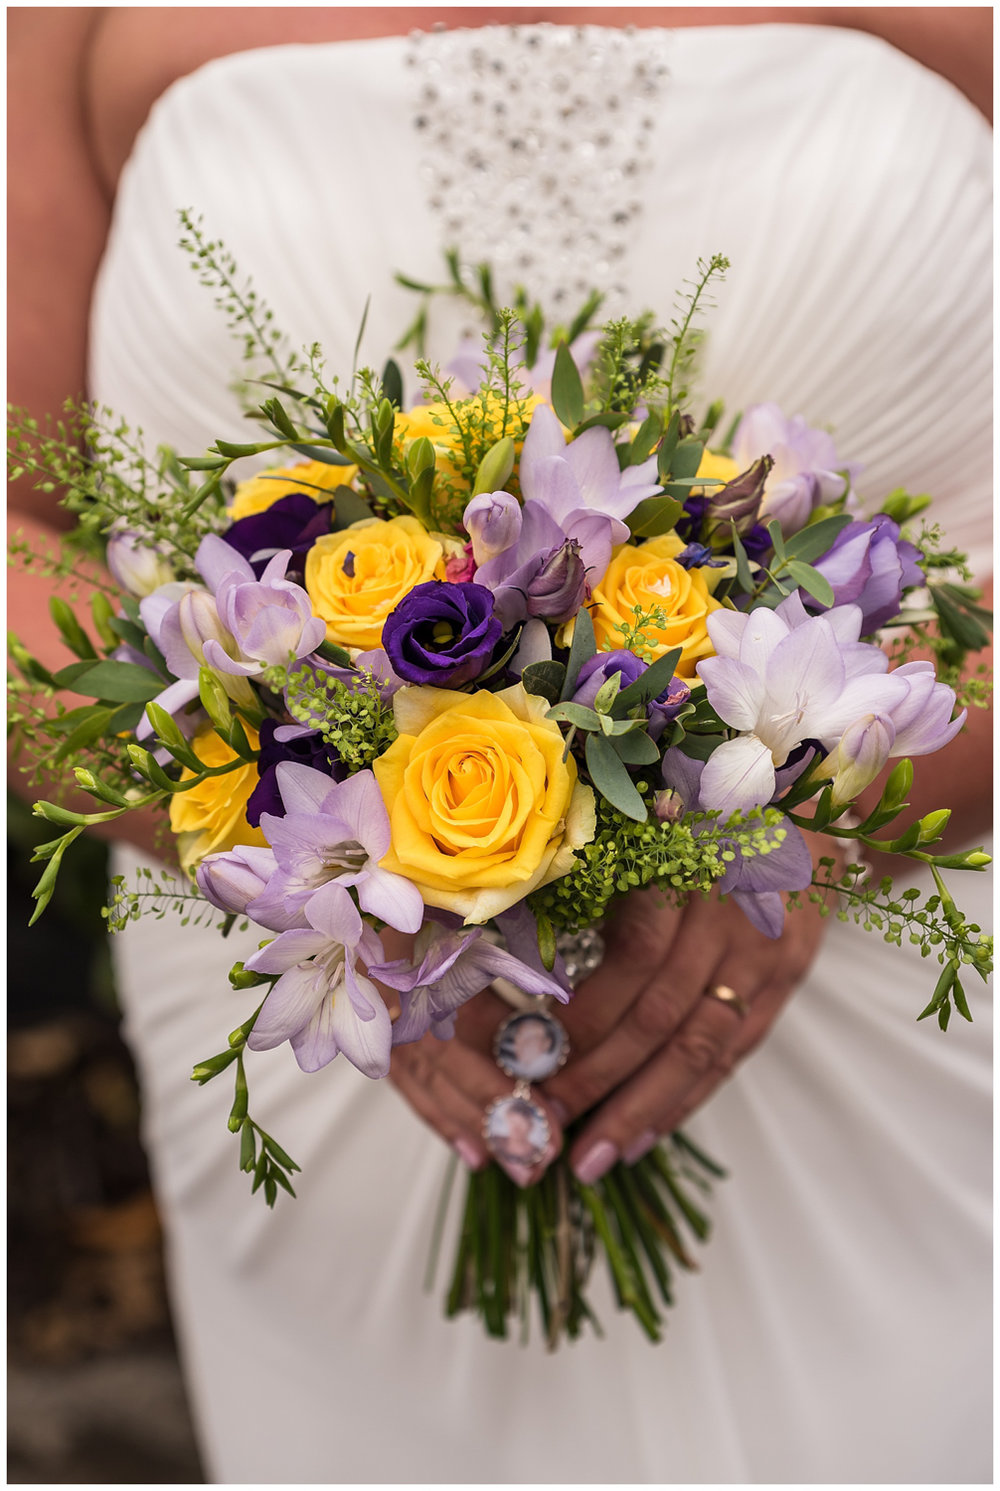 Glenmore House | Bride holding wedding flowers | bouquet